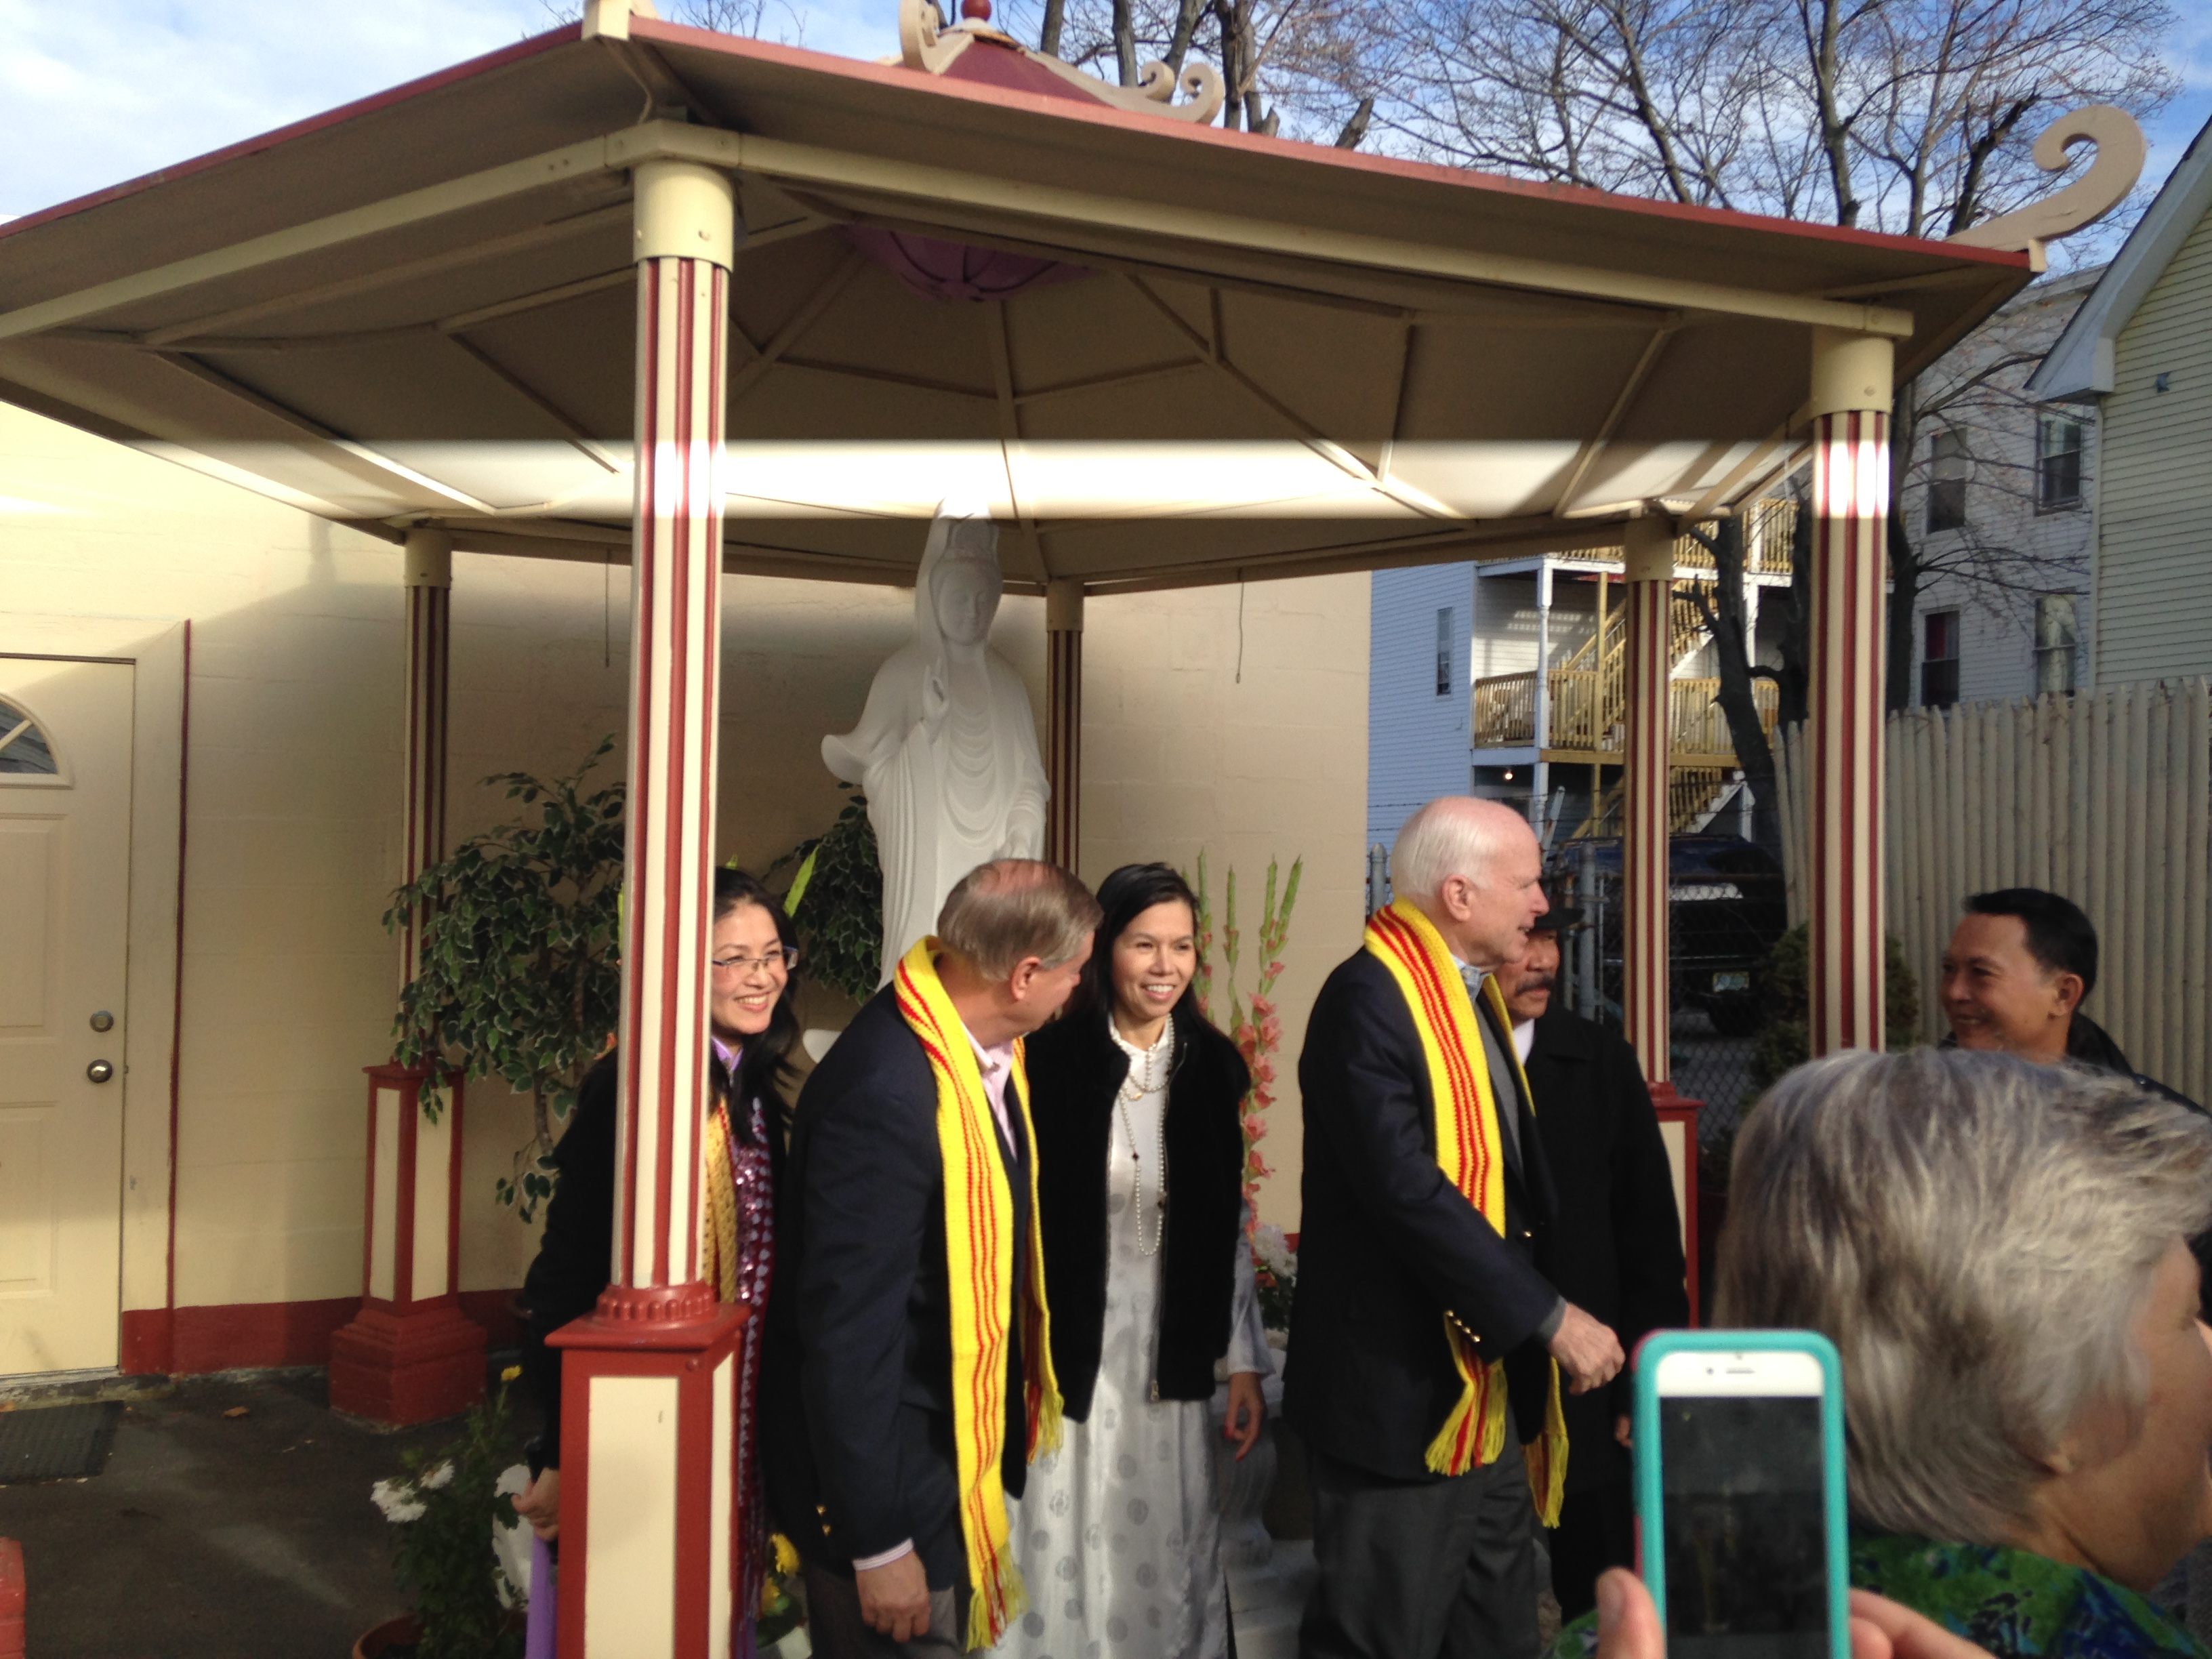 Chau Kelley and Candy Phan with Sens. Lindsey Graham and John McCain at a Vietnamese temple in New Hampshire on Saturday Nov 21